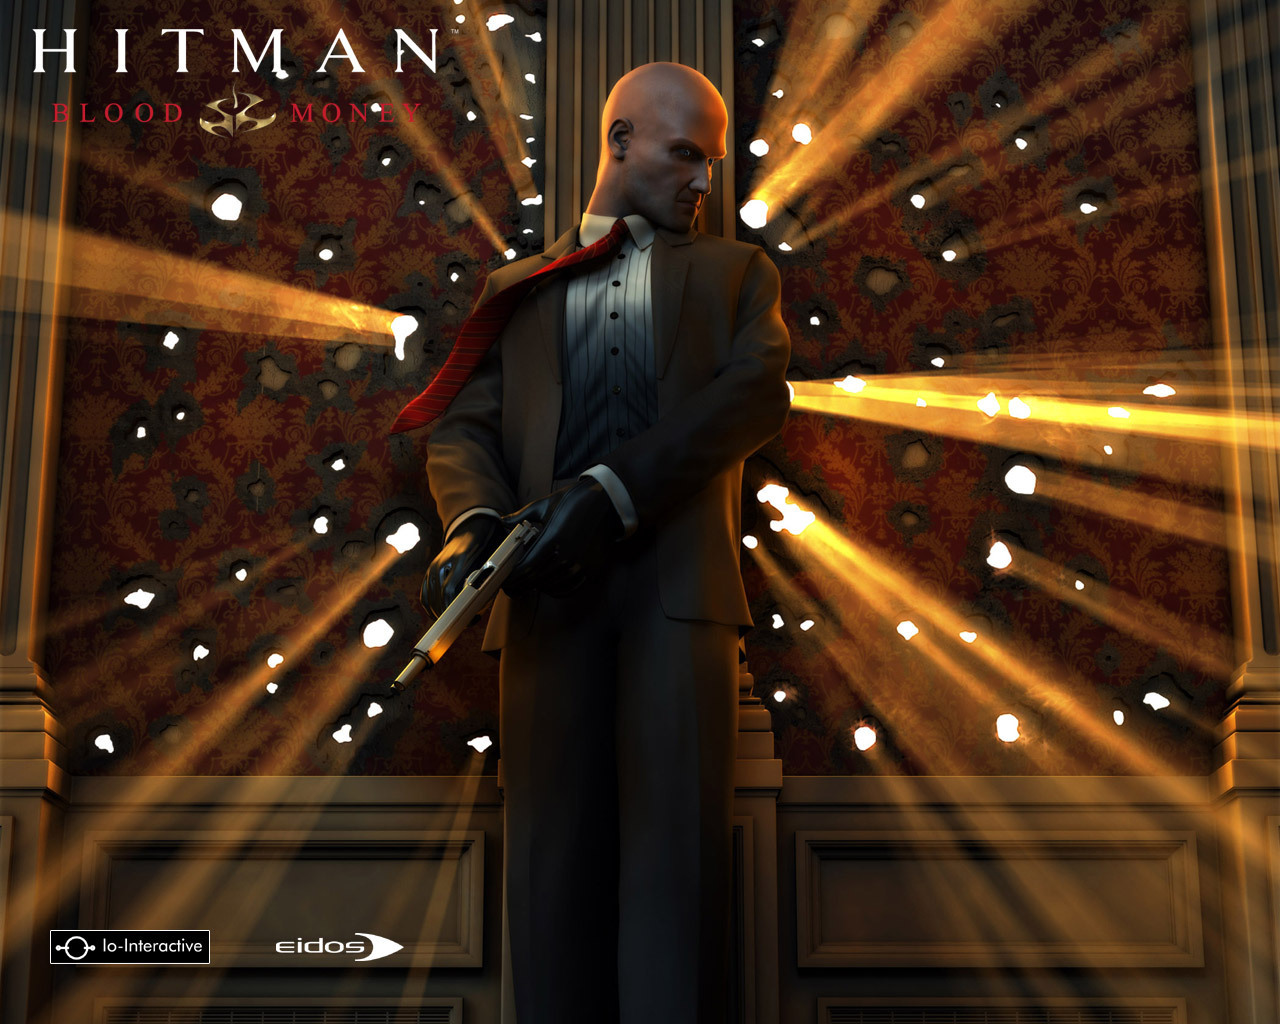 hitman wallpapers   Hitman Wallpaper 7638645 1280x1024